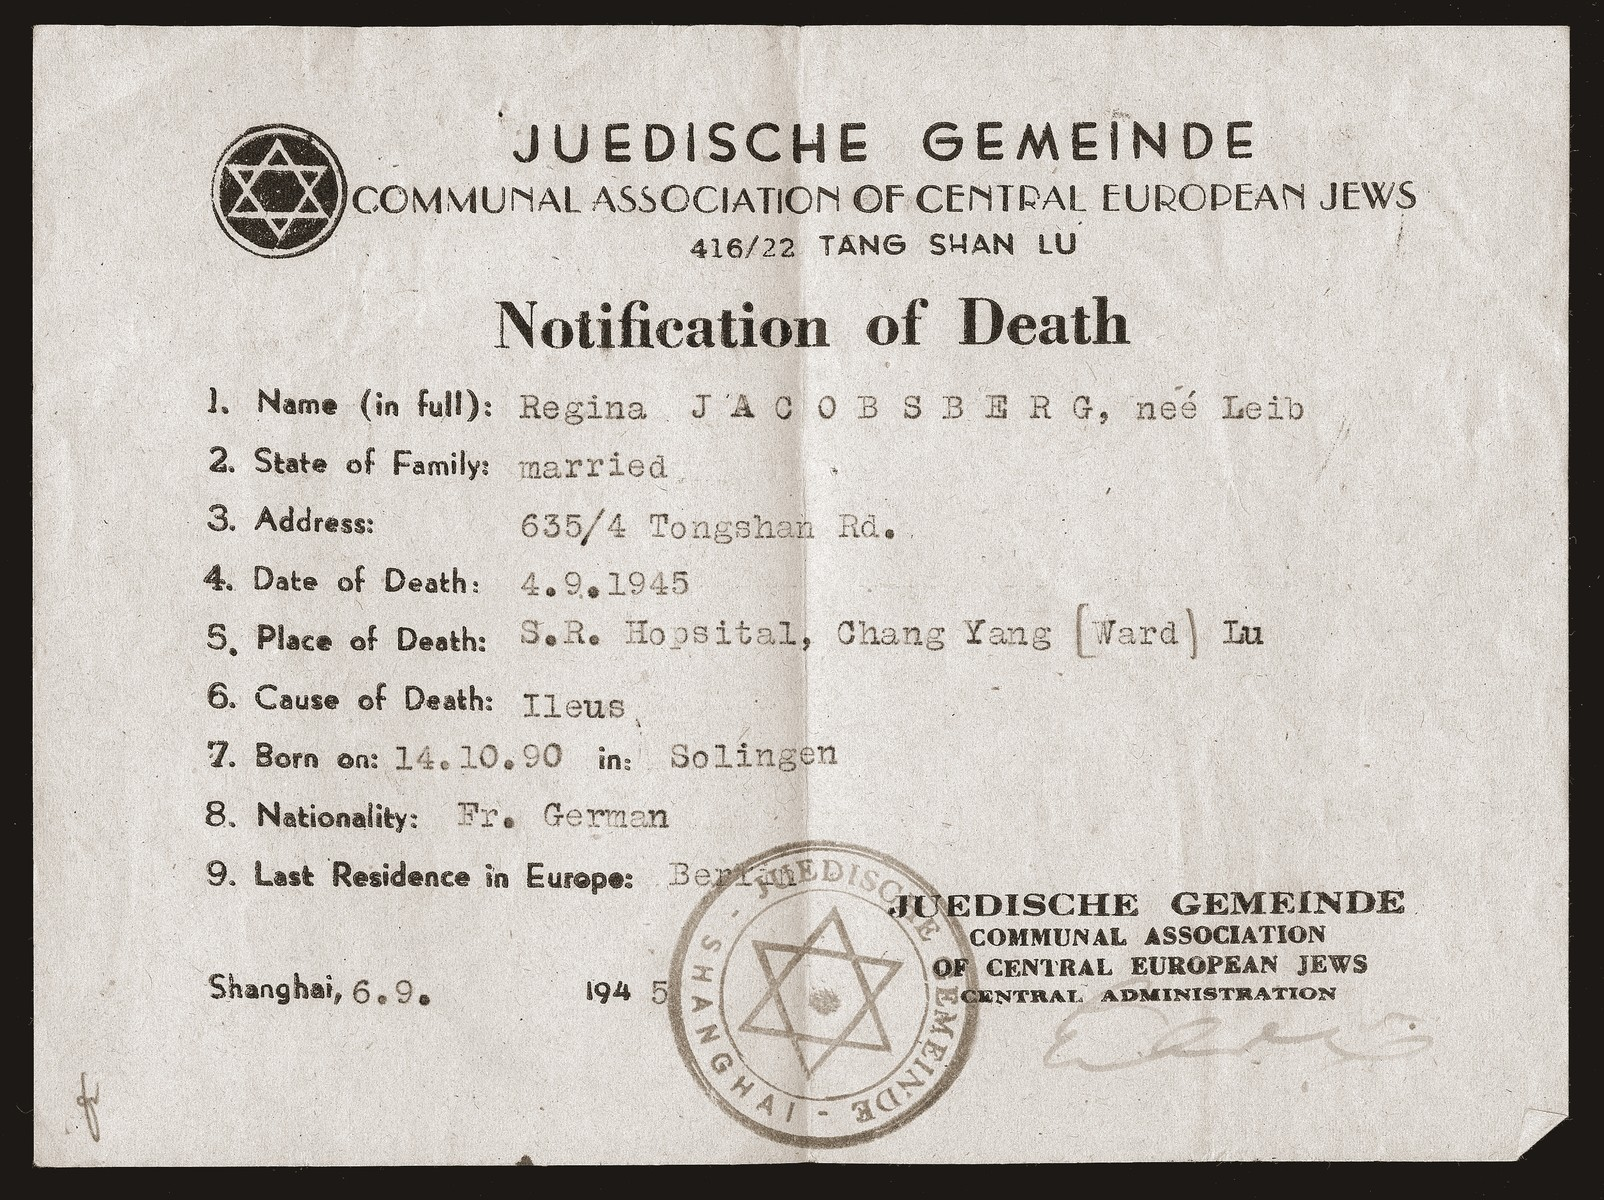 Regina Leib Jacobsberg's death notice, issued by the Jewish community [Juedische Gemeinde] of Shanghai.